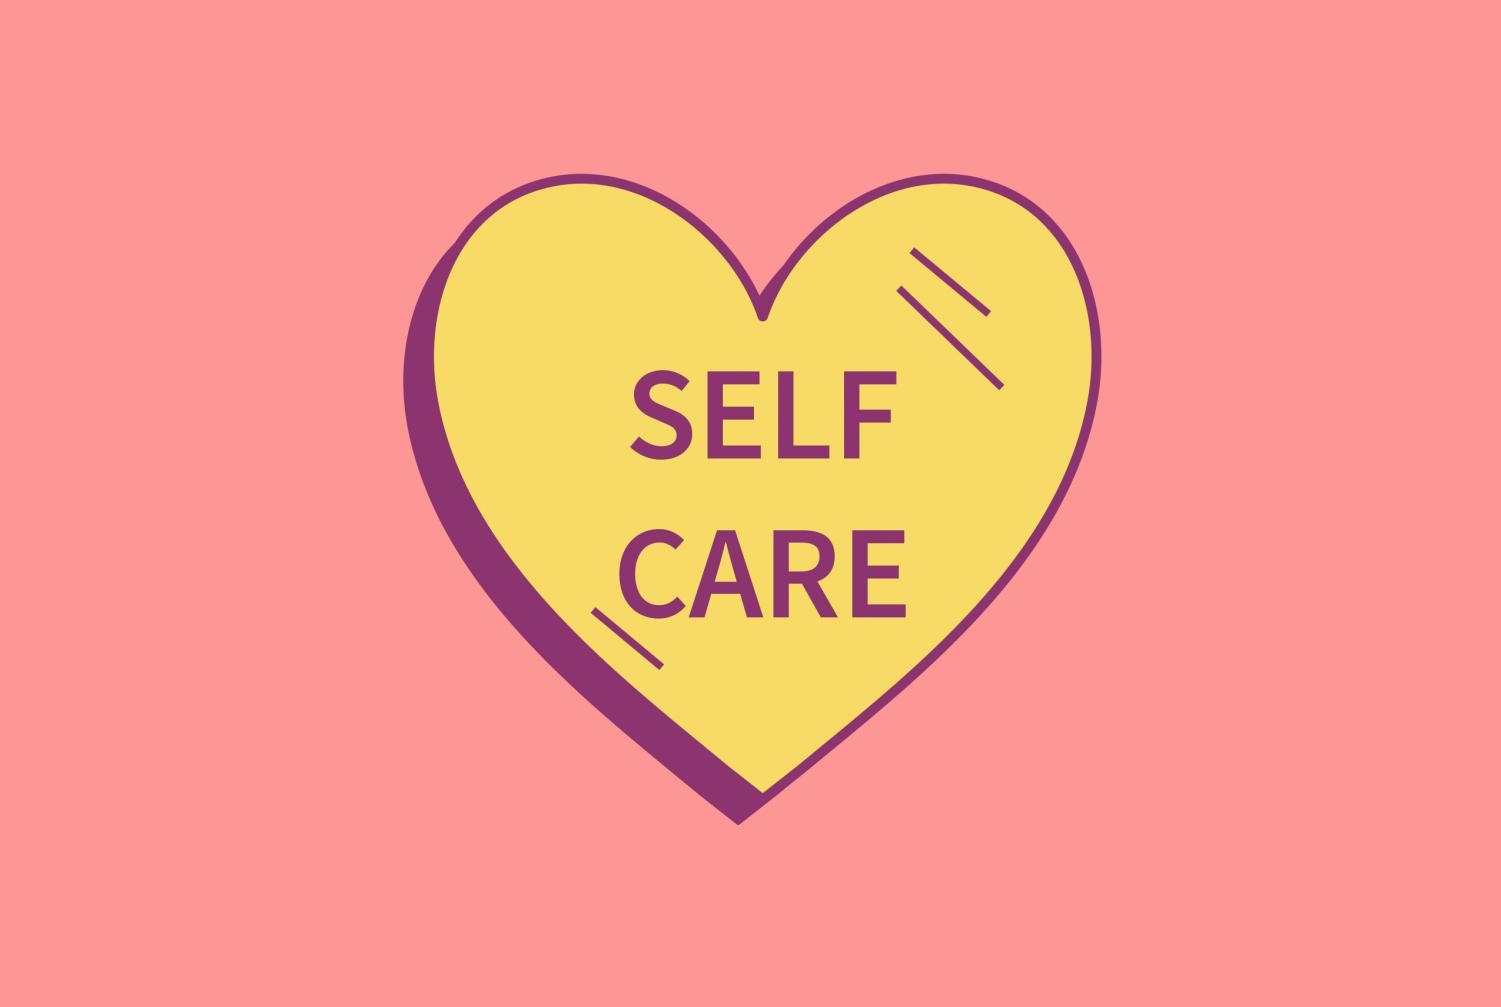 E-Club members plan to have a self-care-themed Valentine event on Feb. 12 complete with healthy snacks, green juice and life advice.